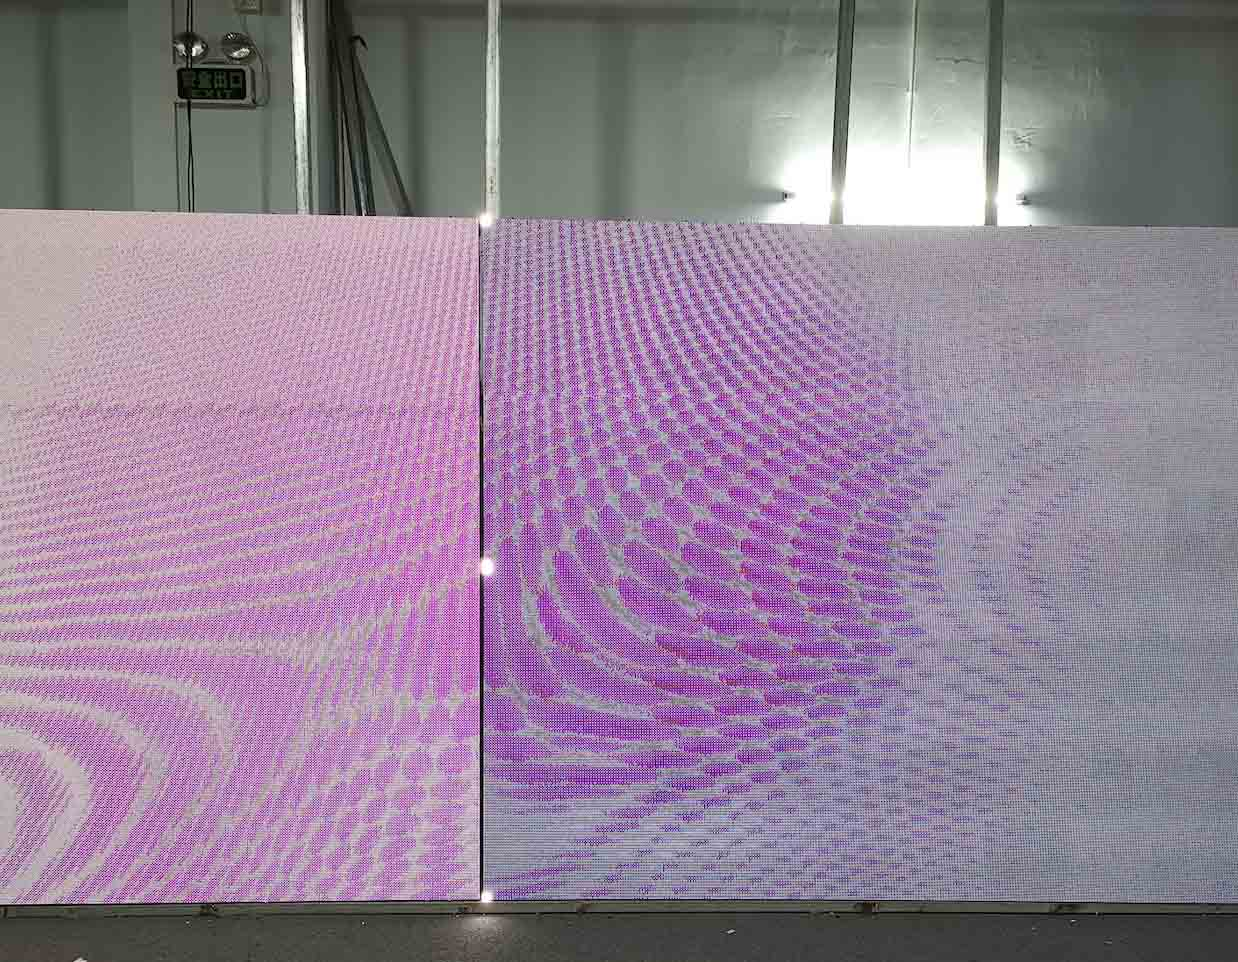 Do we need a high refresh rate LED screen??? 4